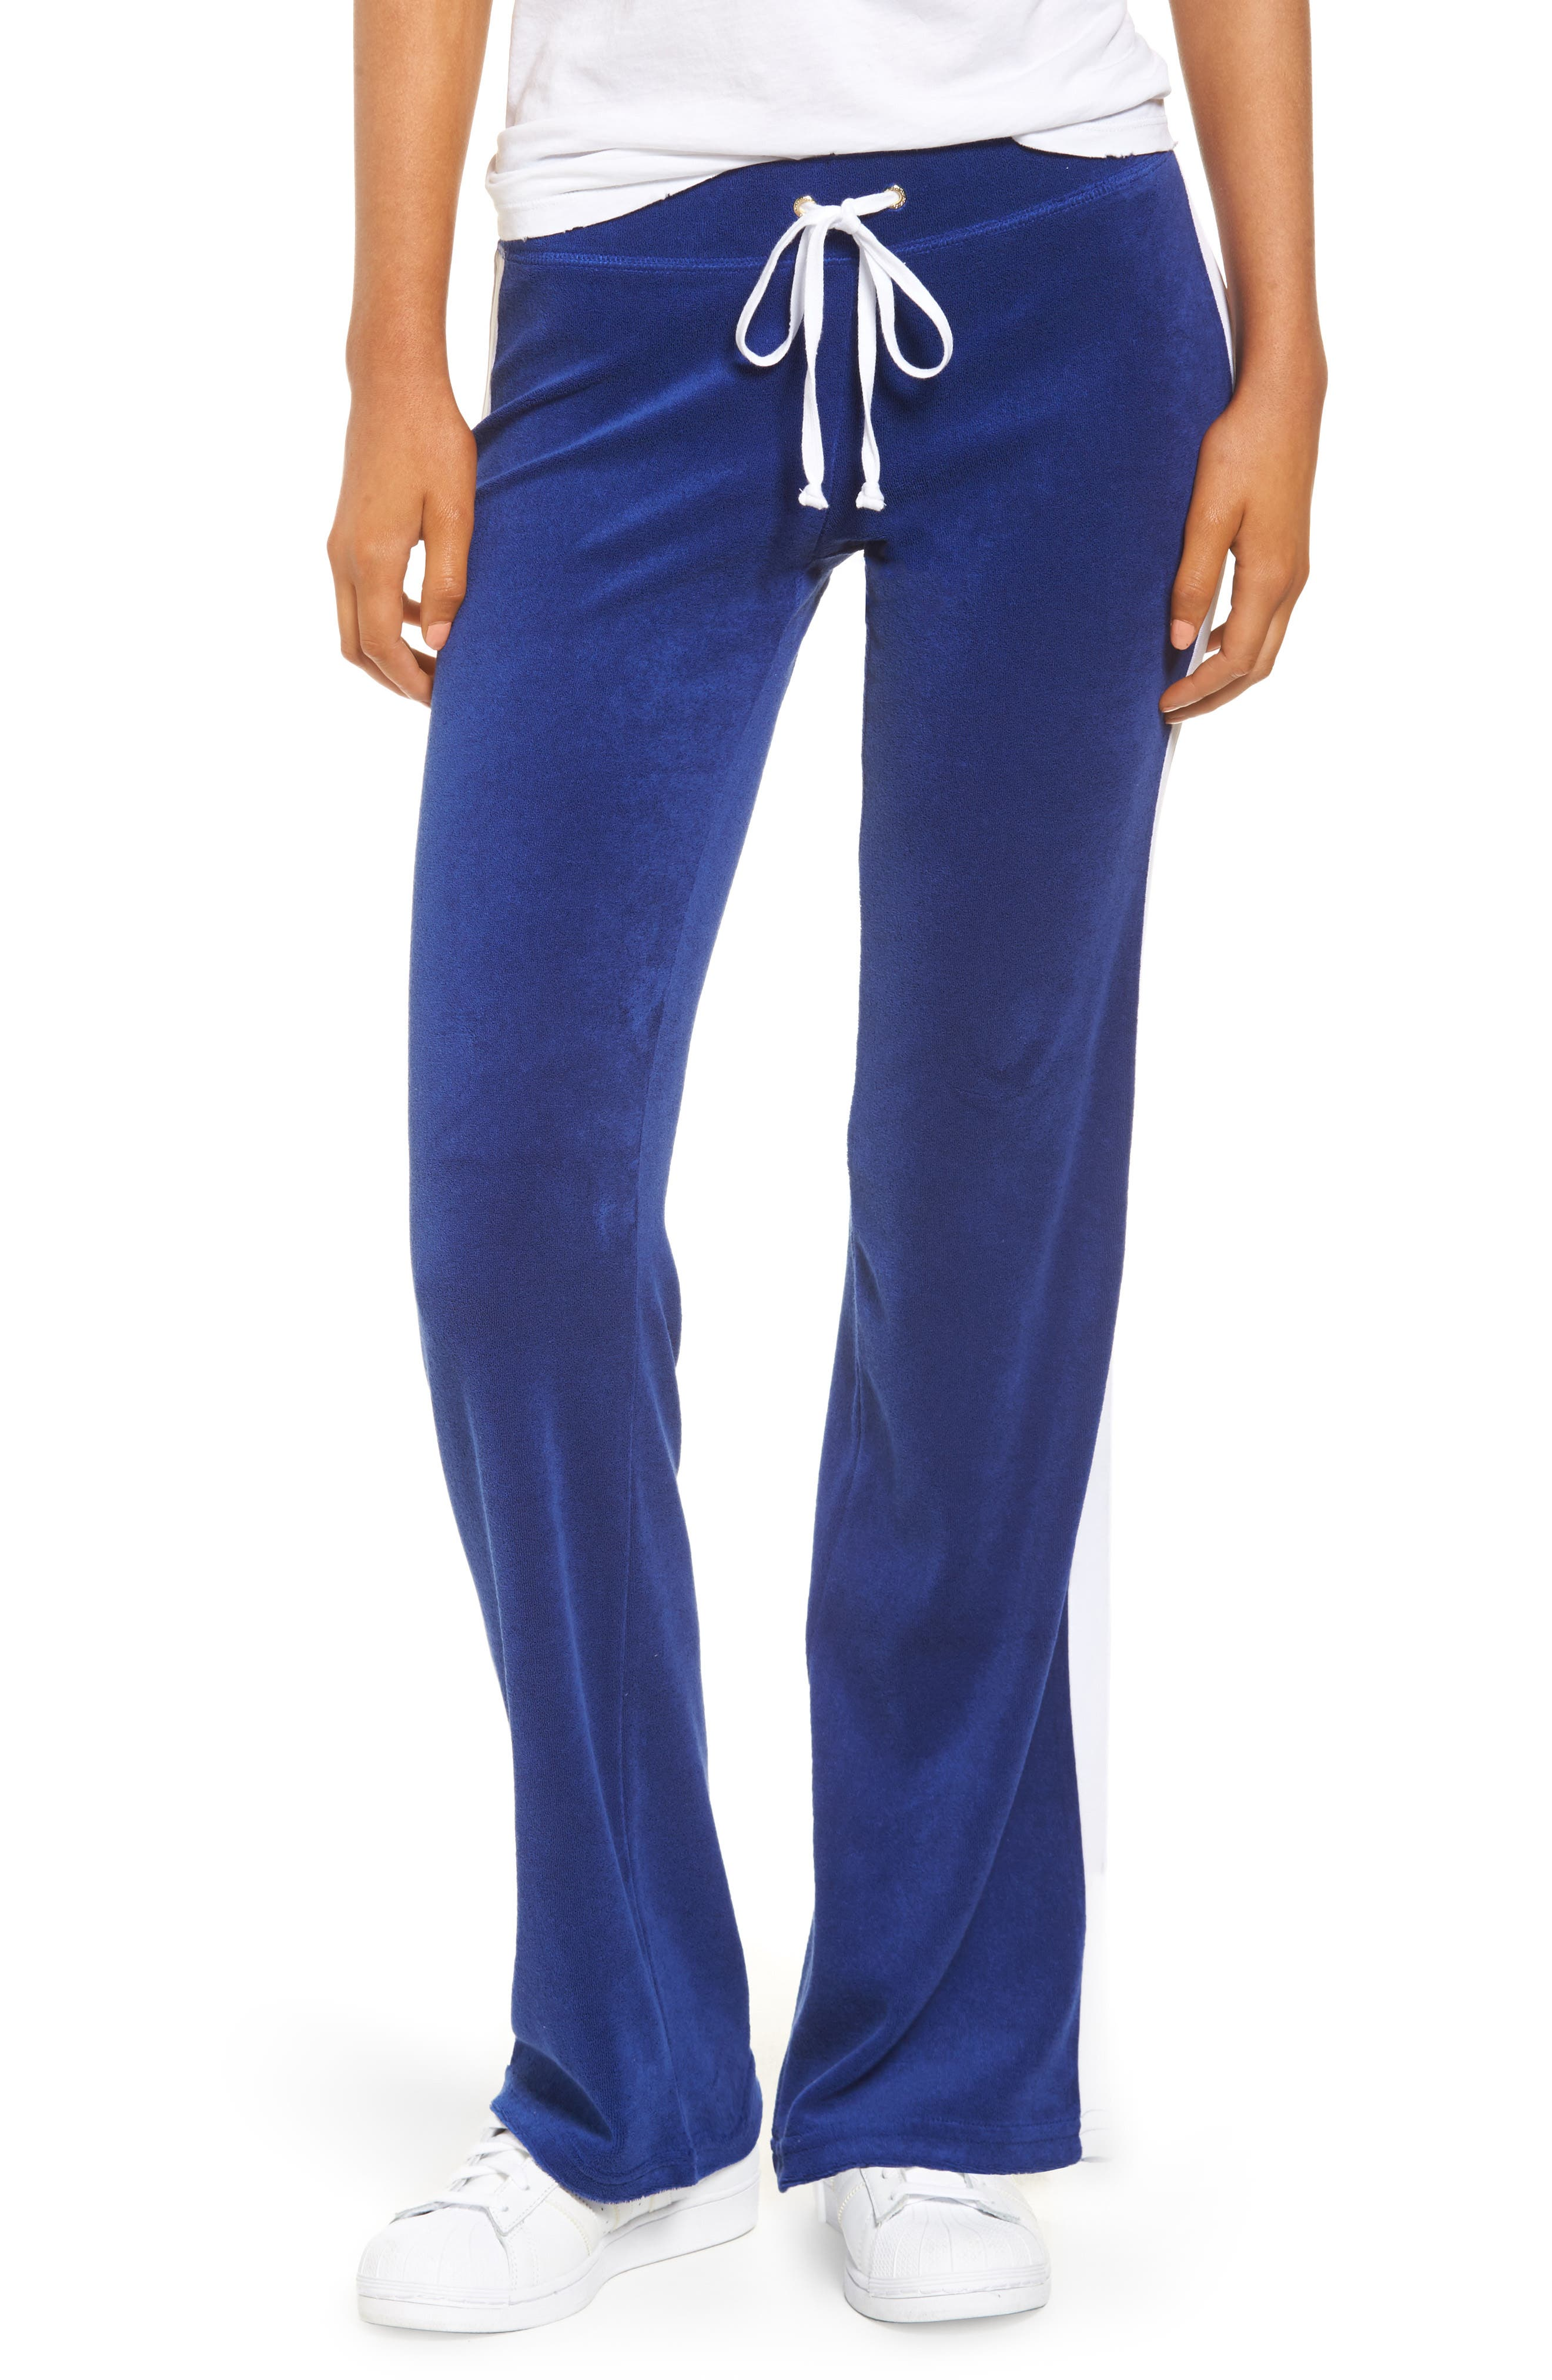 Alternate Image 1 Selected - Juicy Couture Venice Beach Del Ray Microterry Pants